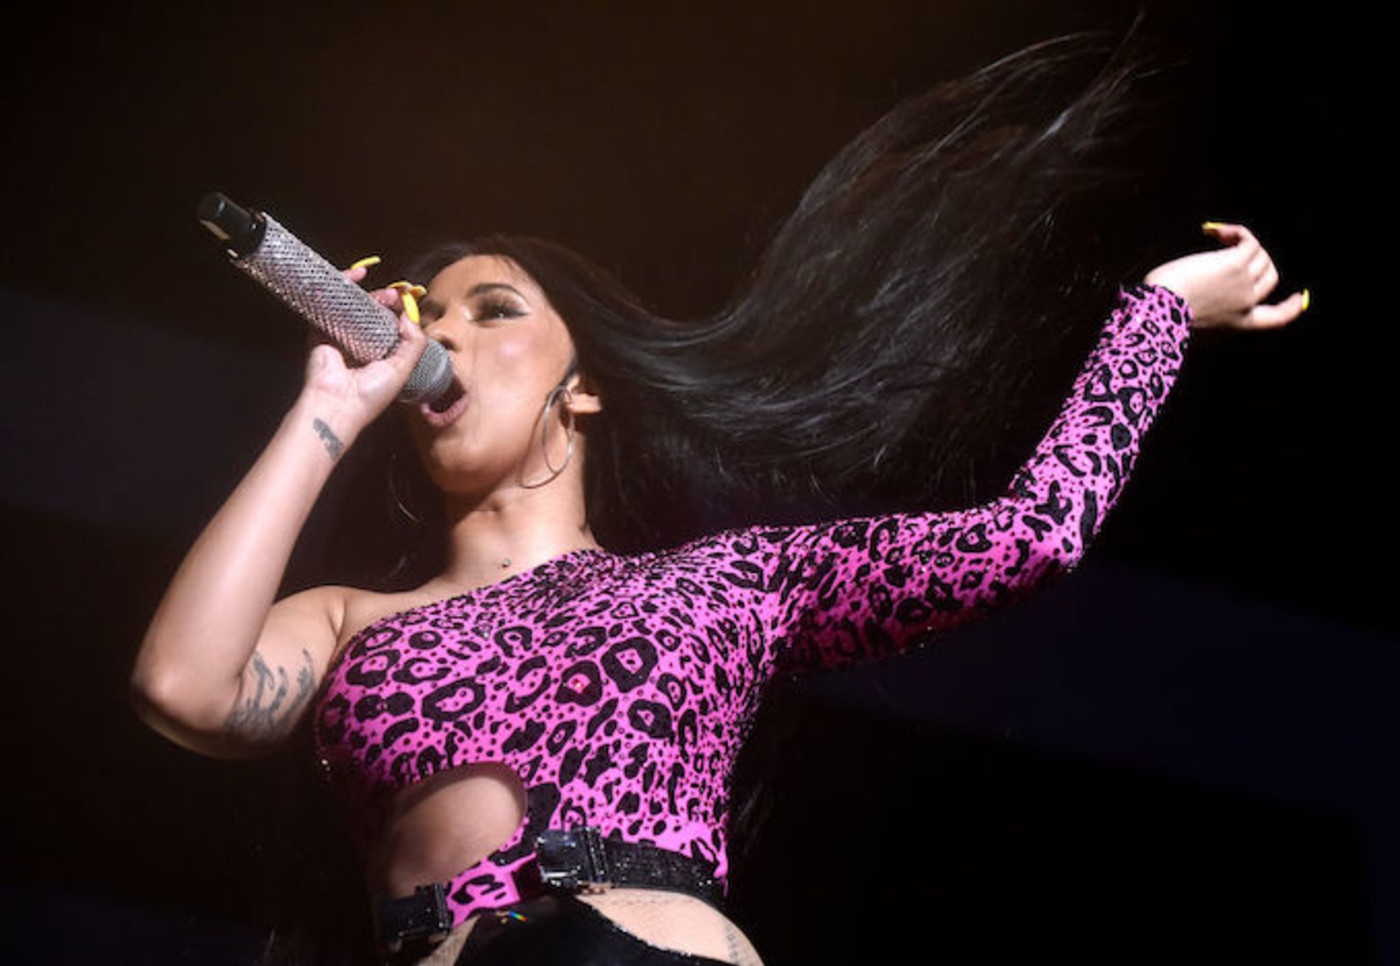 This is a picture of Cardi B.